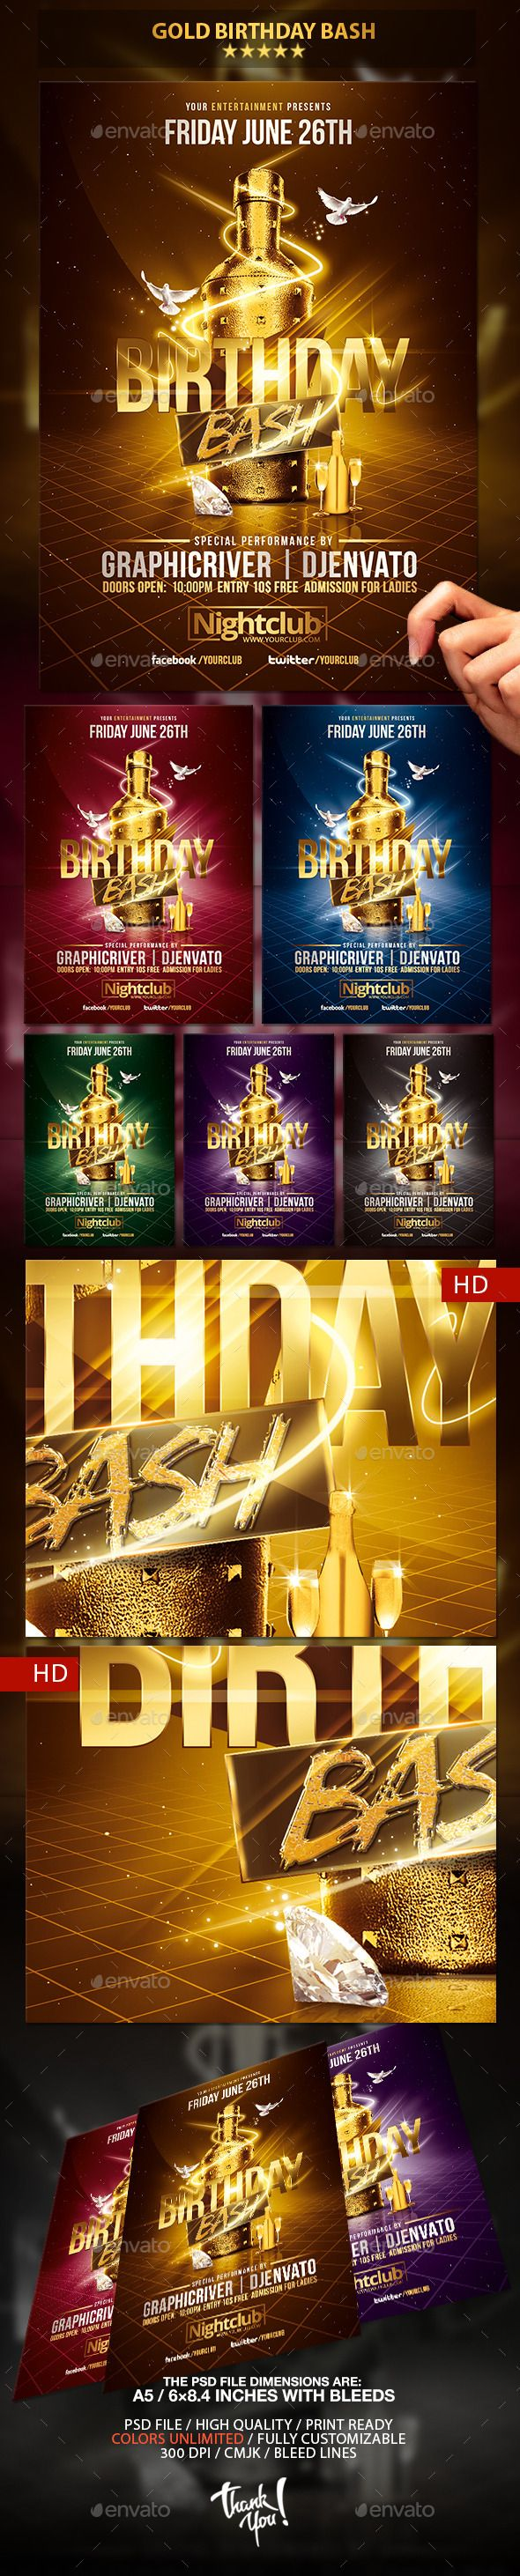 gold birthday bash psd flyer template psd flyer templates flyer